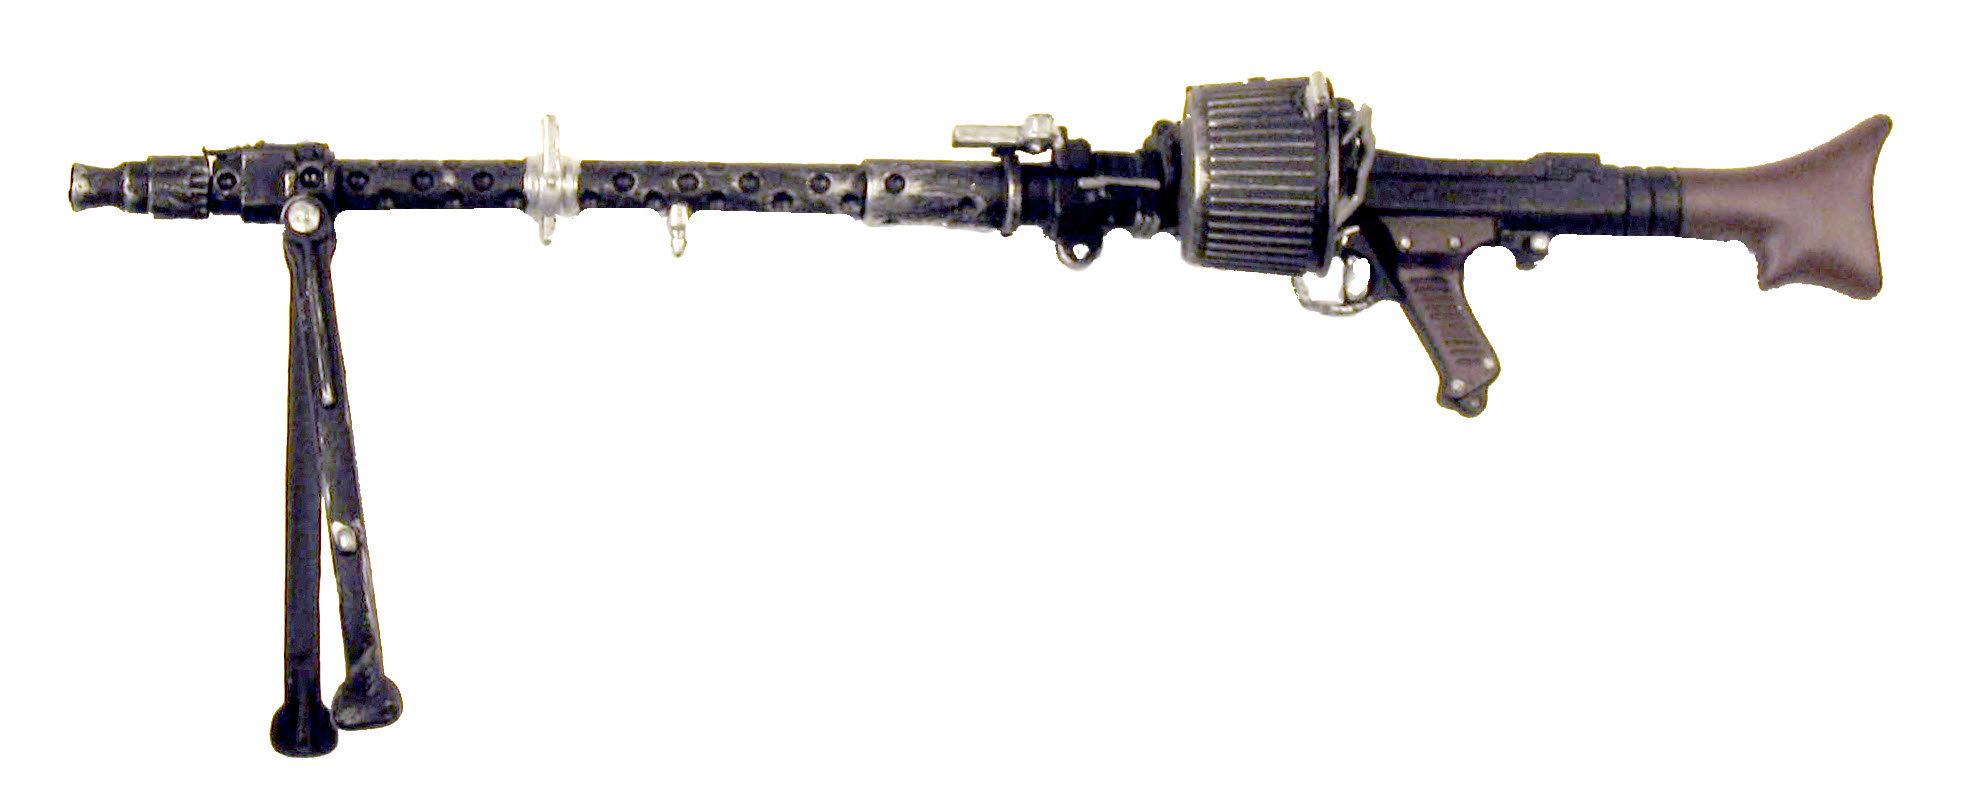 German MG-34 w/rd ammo can - Click Image to Close